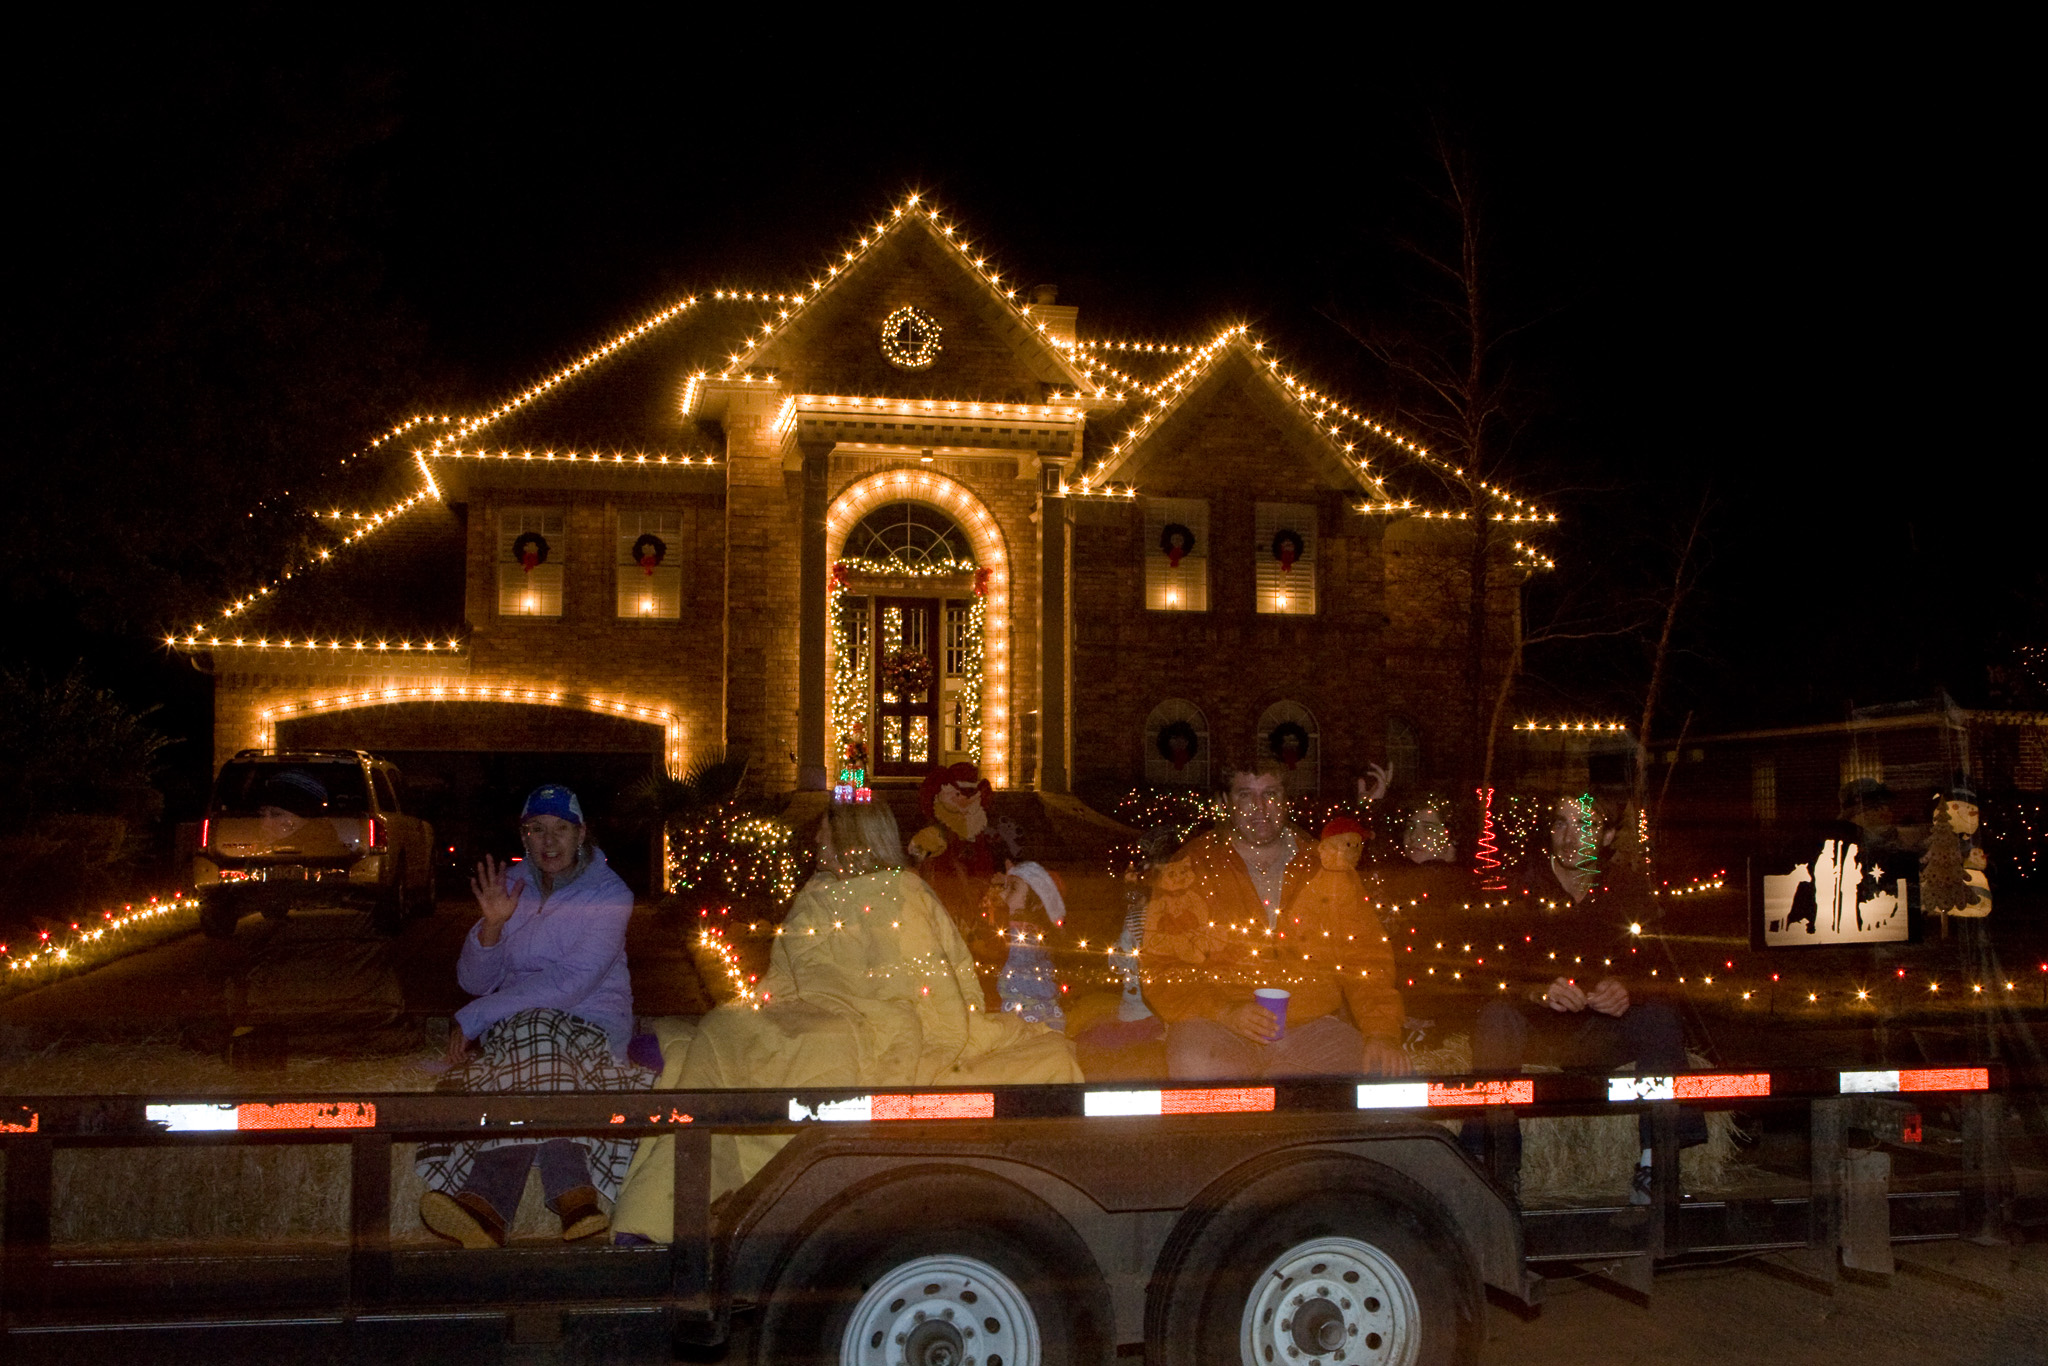 Pecan Grove Christmas Lights Hayrides 2020 Enjoy the lights on a jolly hayride